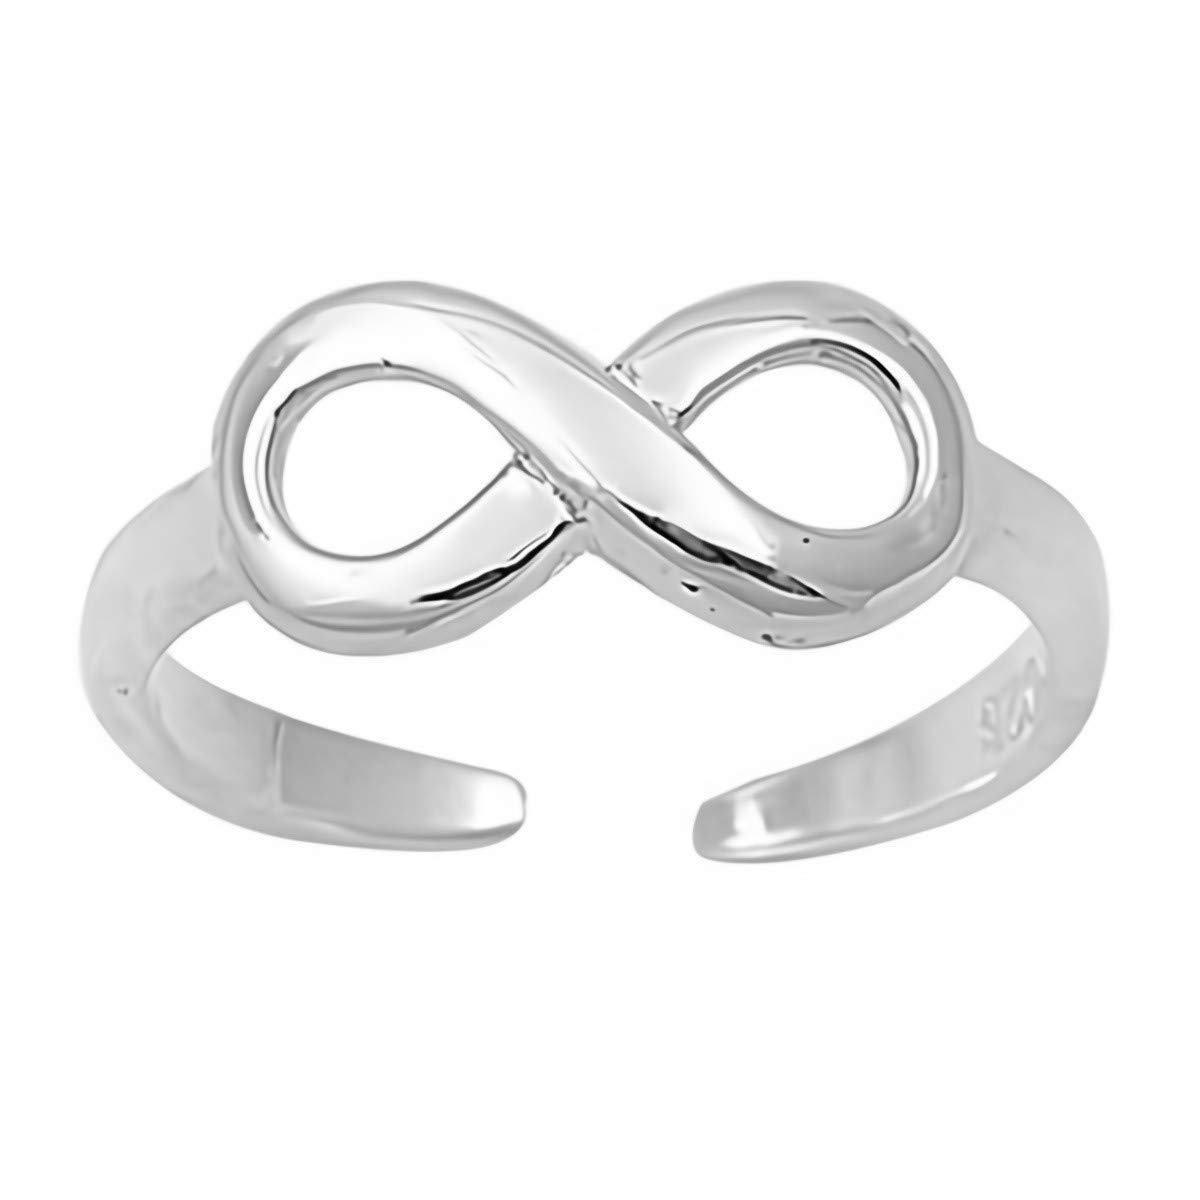 Infinity Glitzs Jewels 925 Sterling Silver Toe Ring for Women and Girls Cute Jewelry Gift